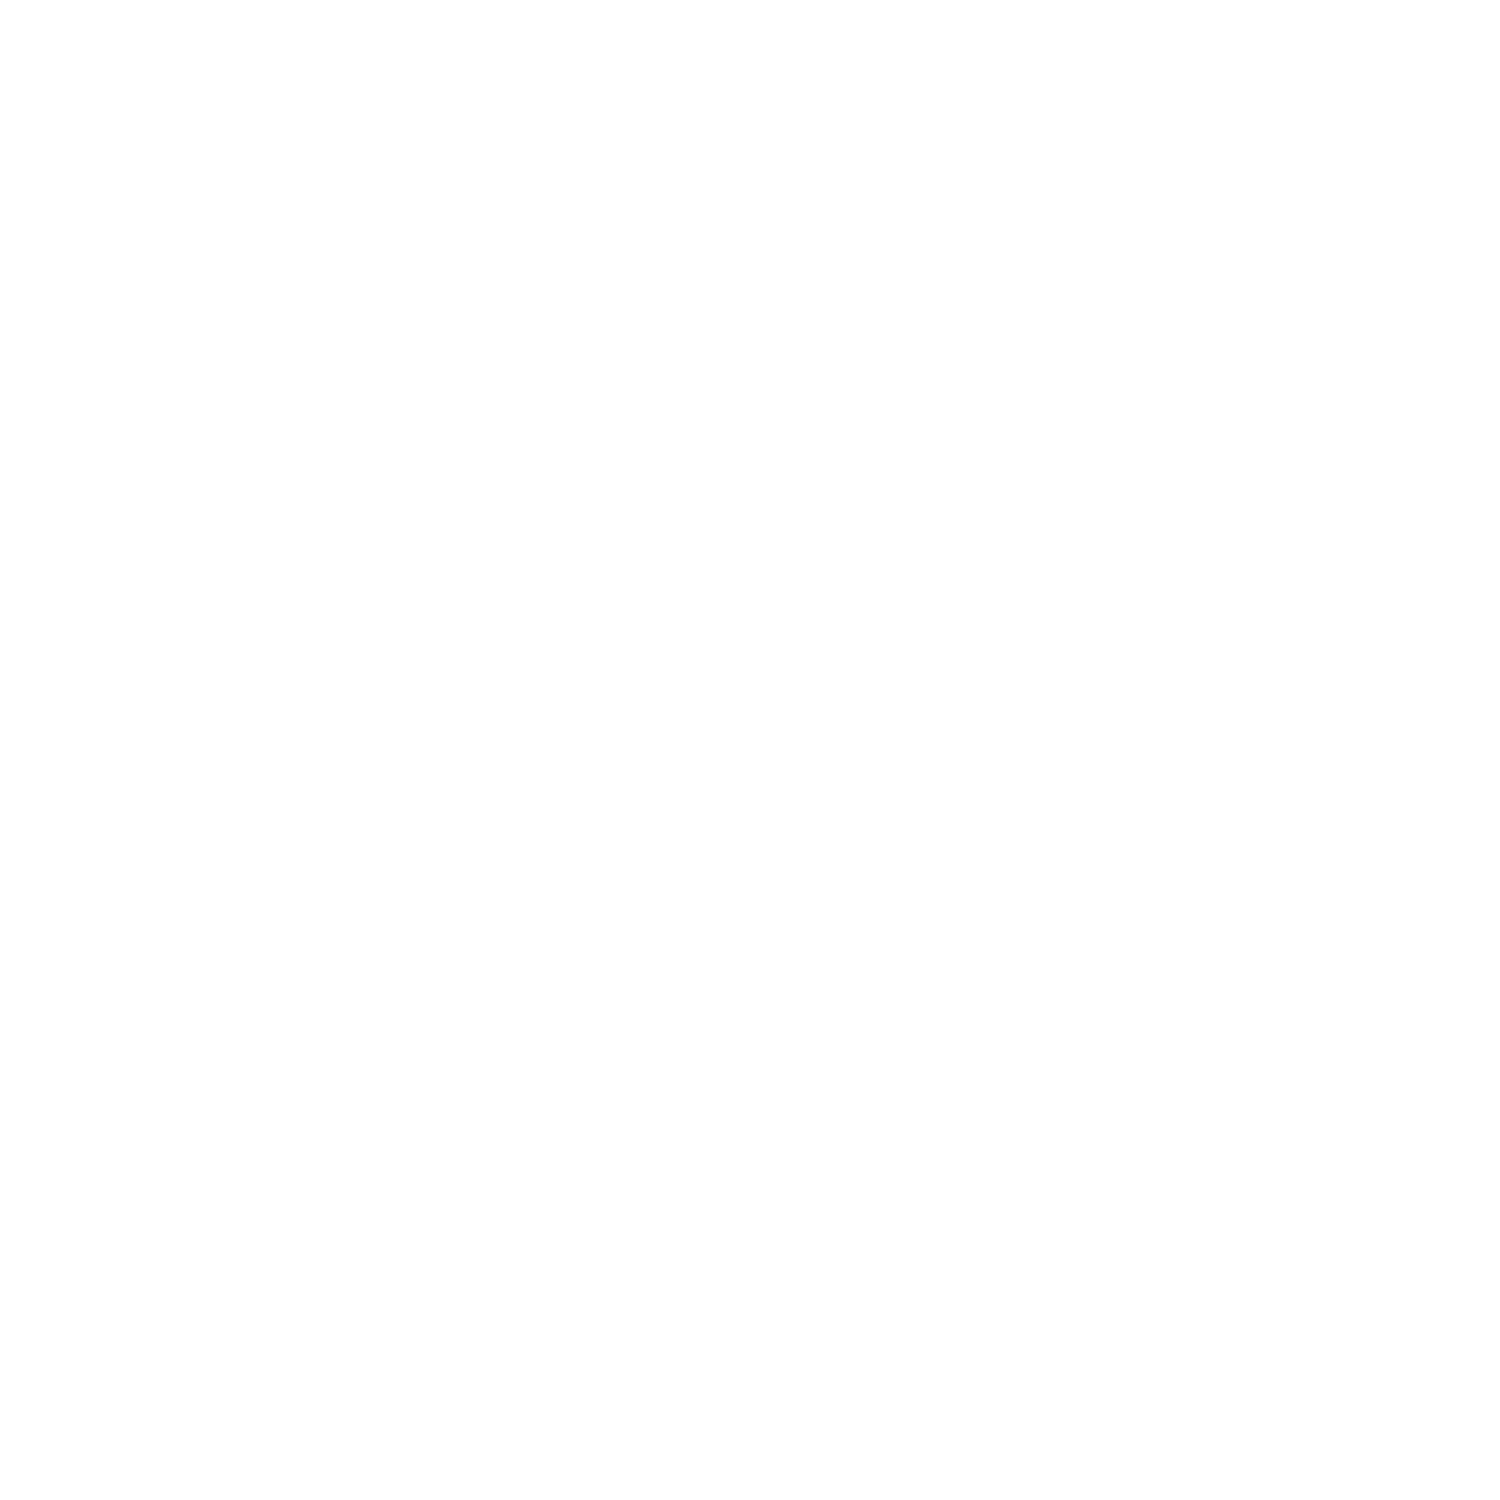 Kevin M Burns